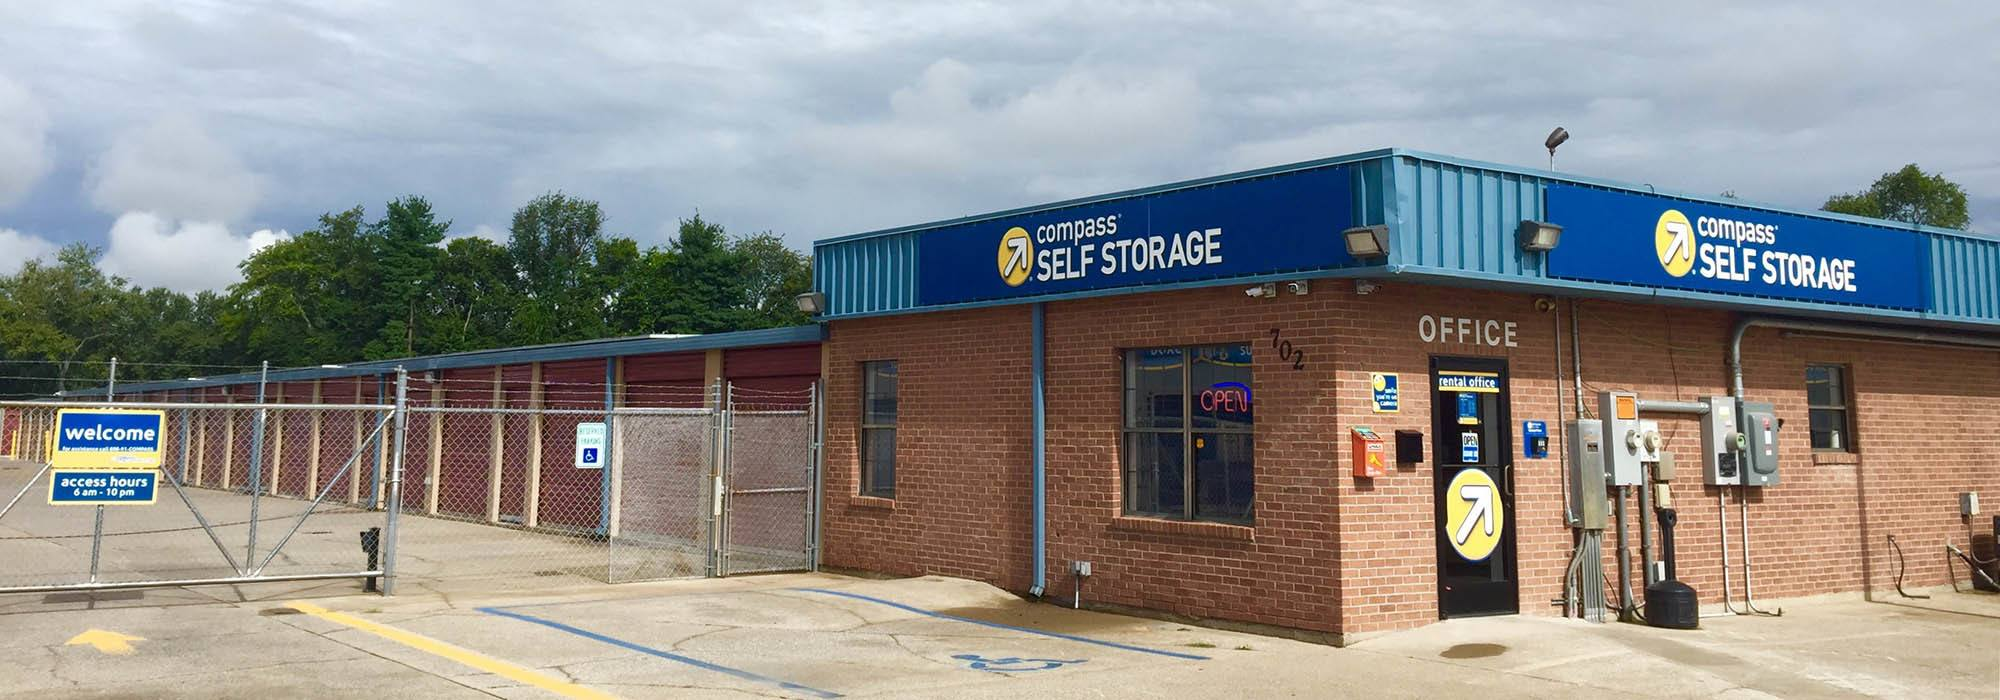 Self Storage In Murfreesboro Tn